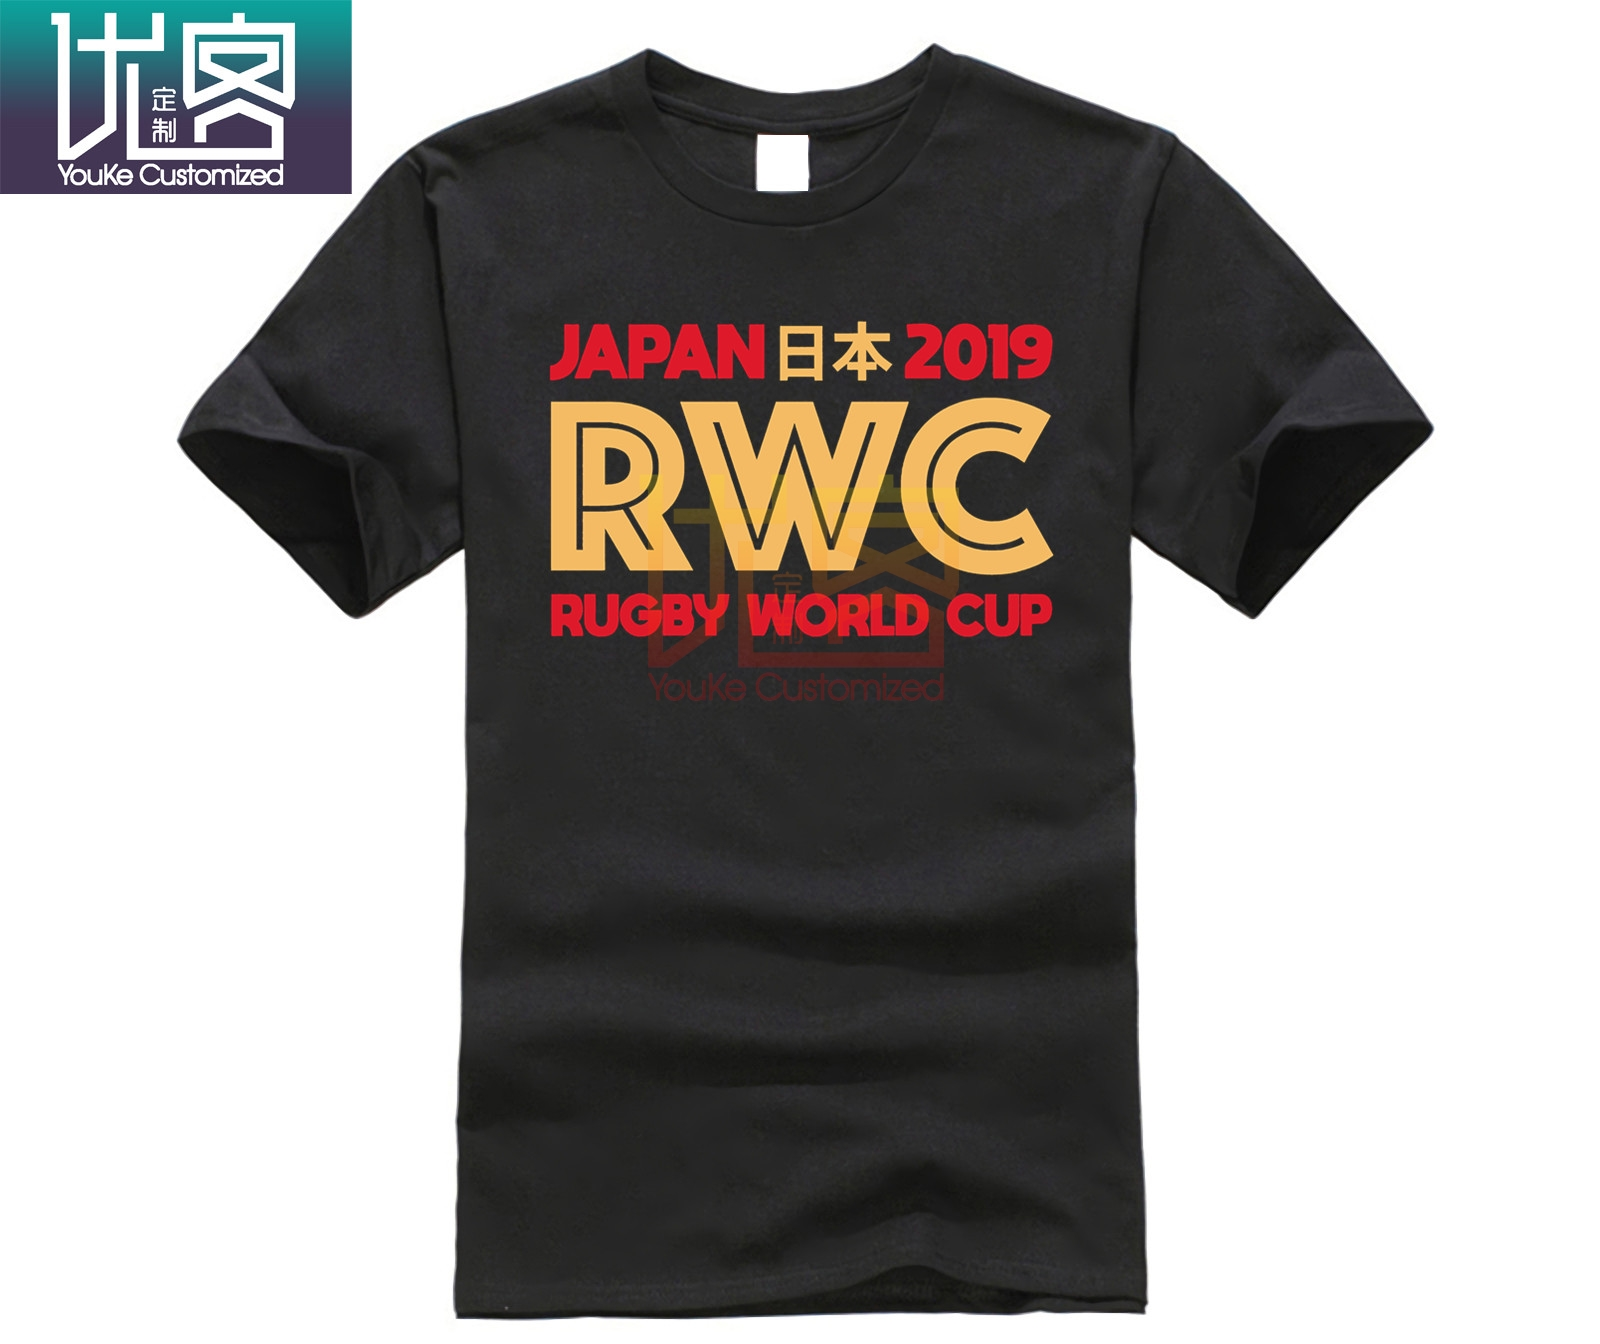 RWC Rugby World Cup T-Shirt - Japan Japanese 2019 Team Supporter Gift Top